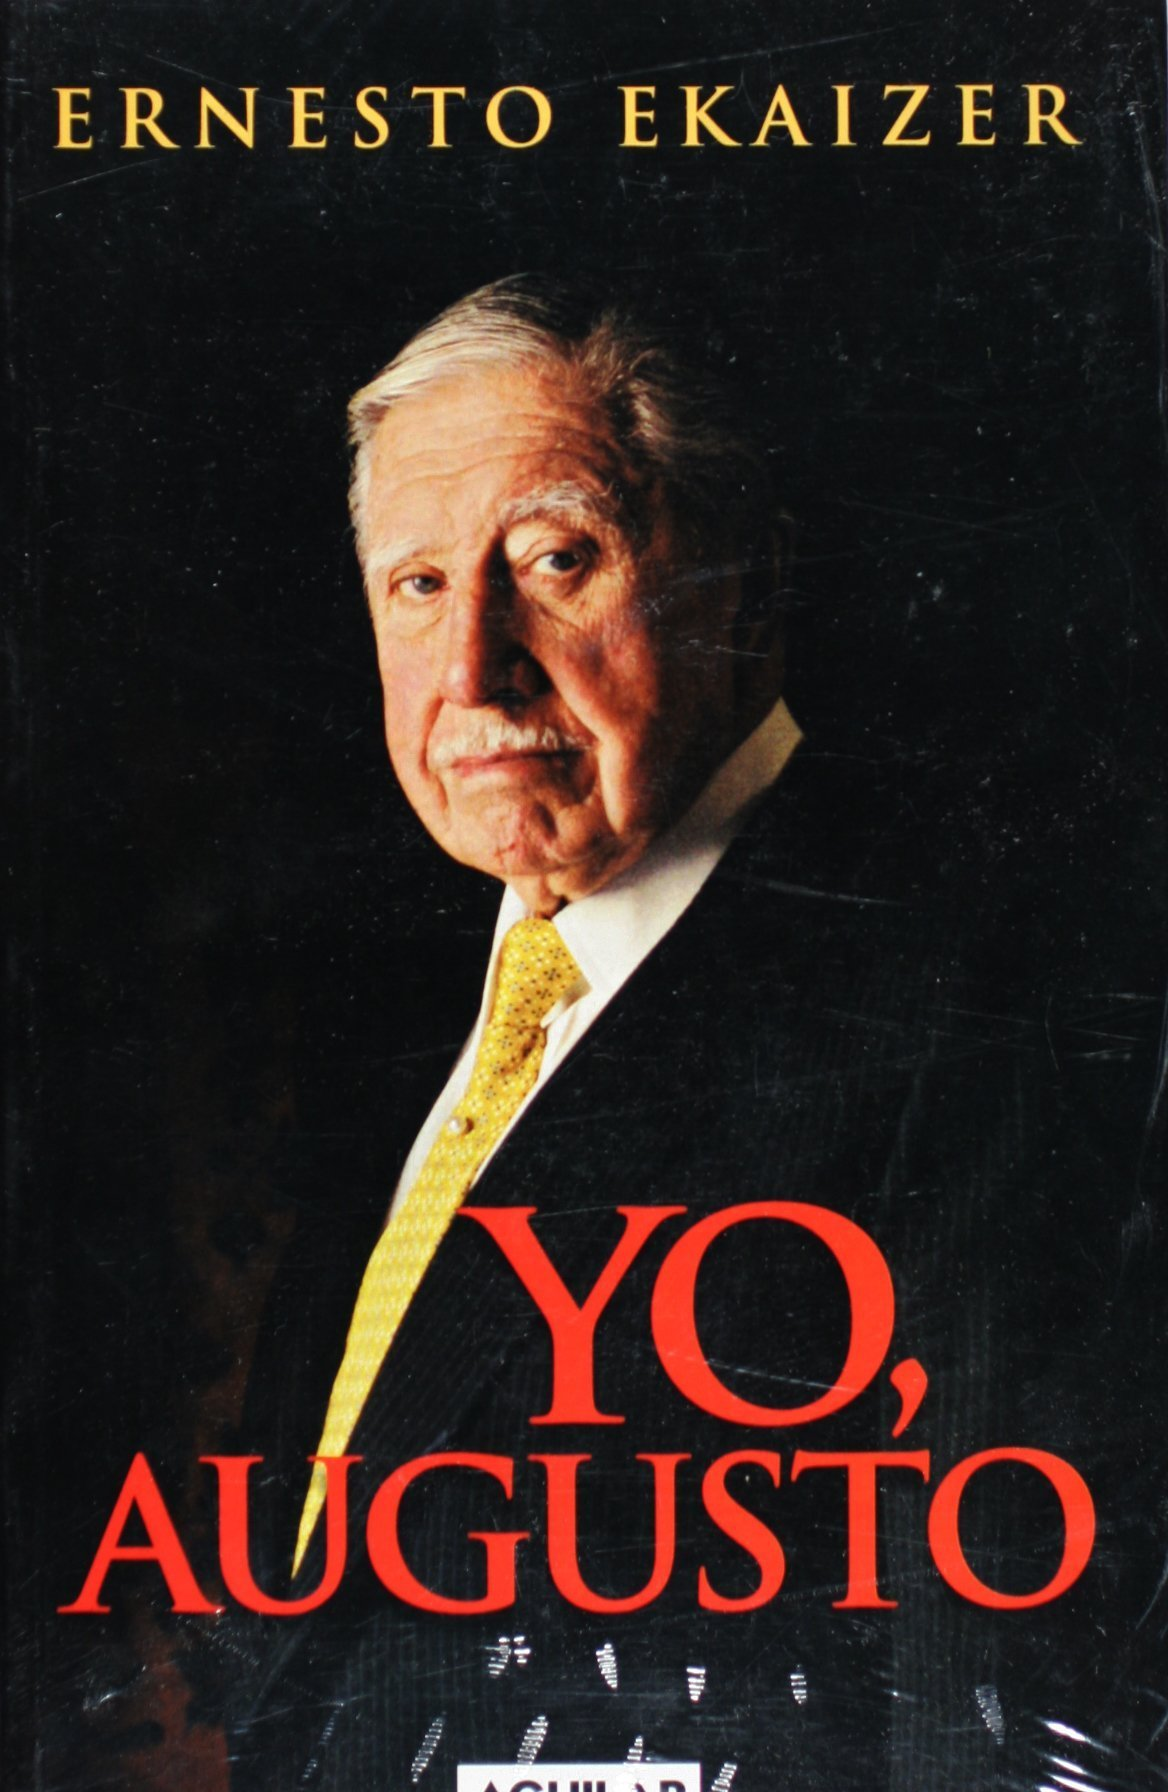 Yo, Augusto/i, Augusto Pinochet by Brand: Aguilar Editor